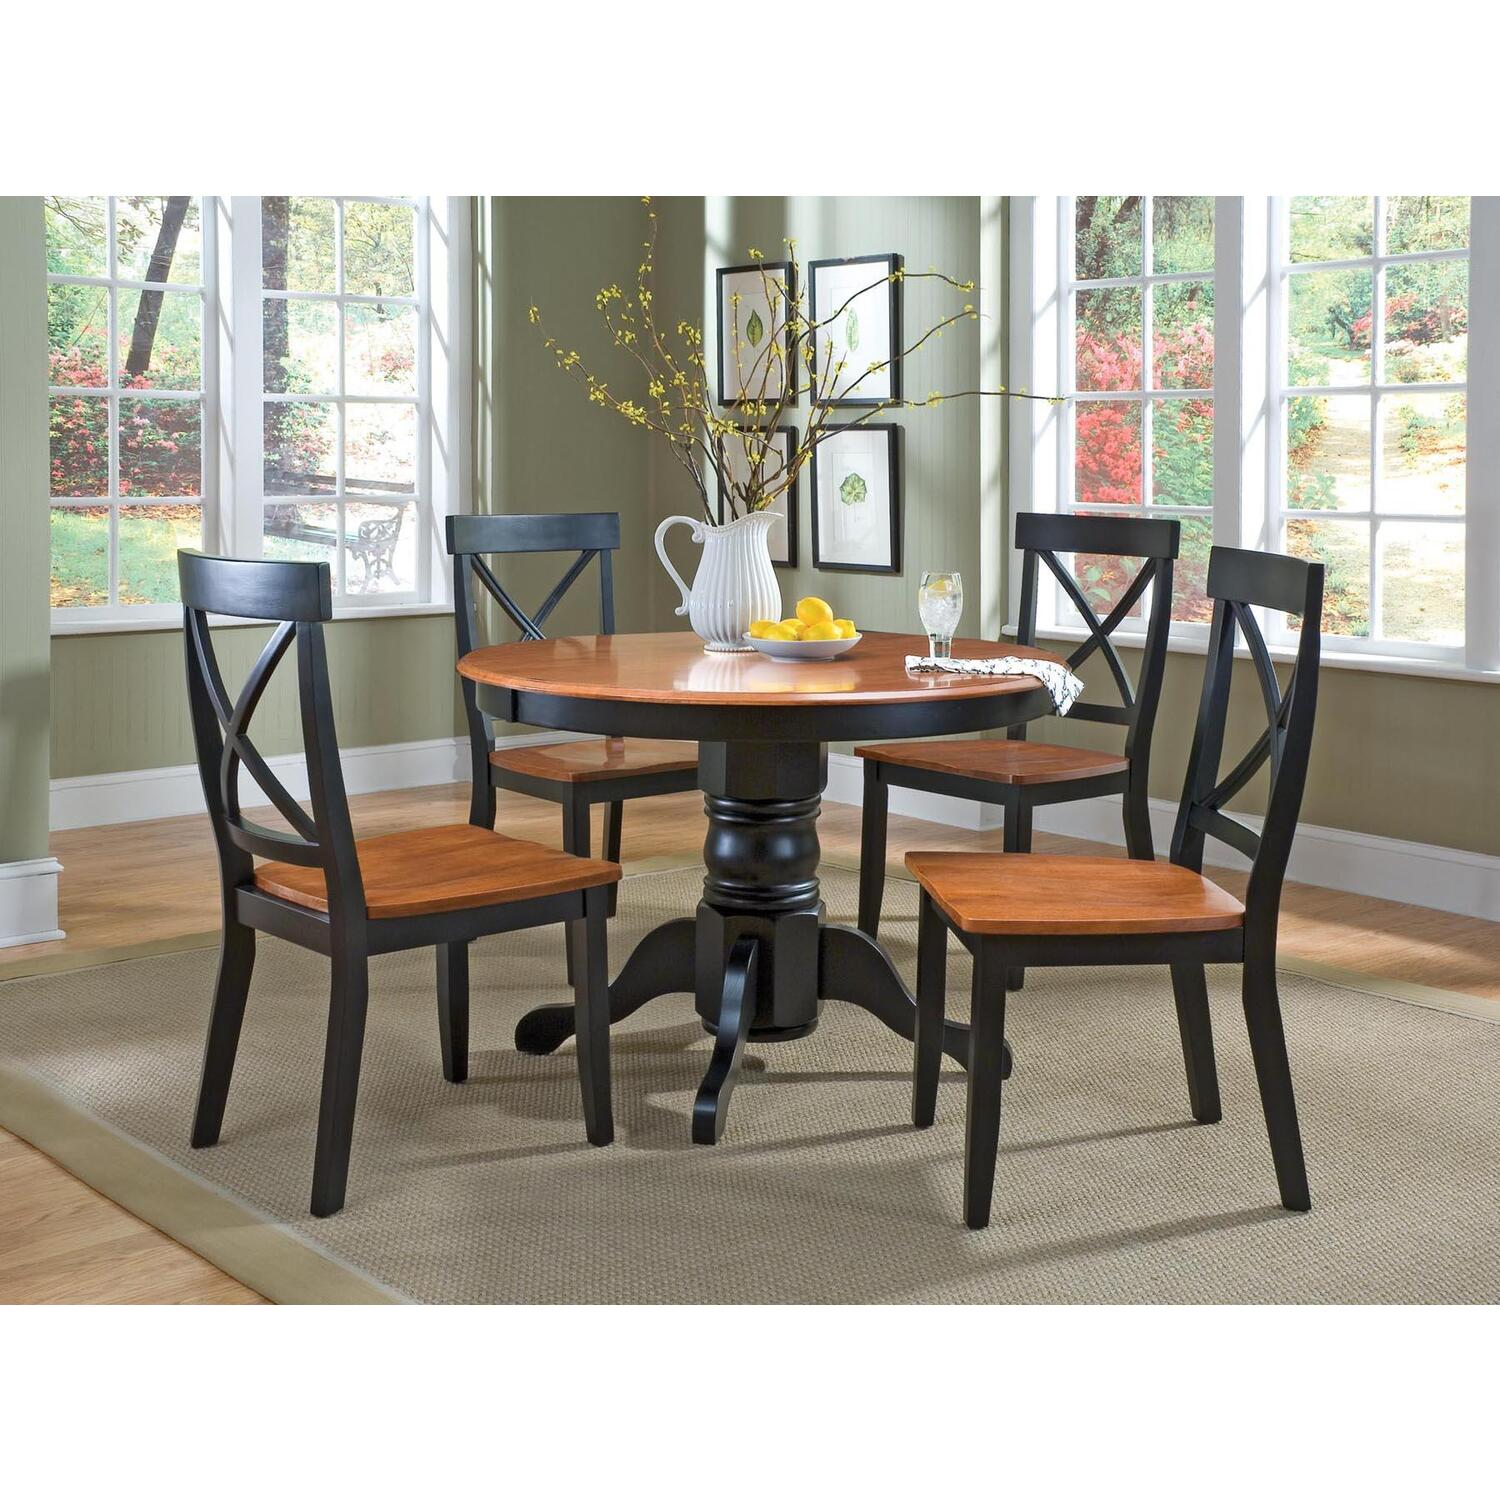 Home styles 5 piece round pedestal dining set by oj for 5 piece dining room set with bench